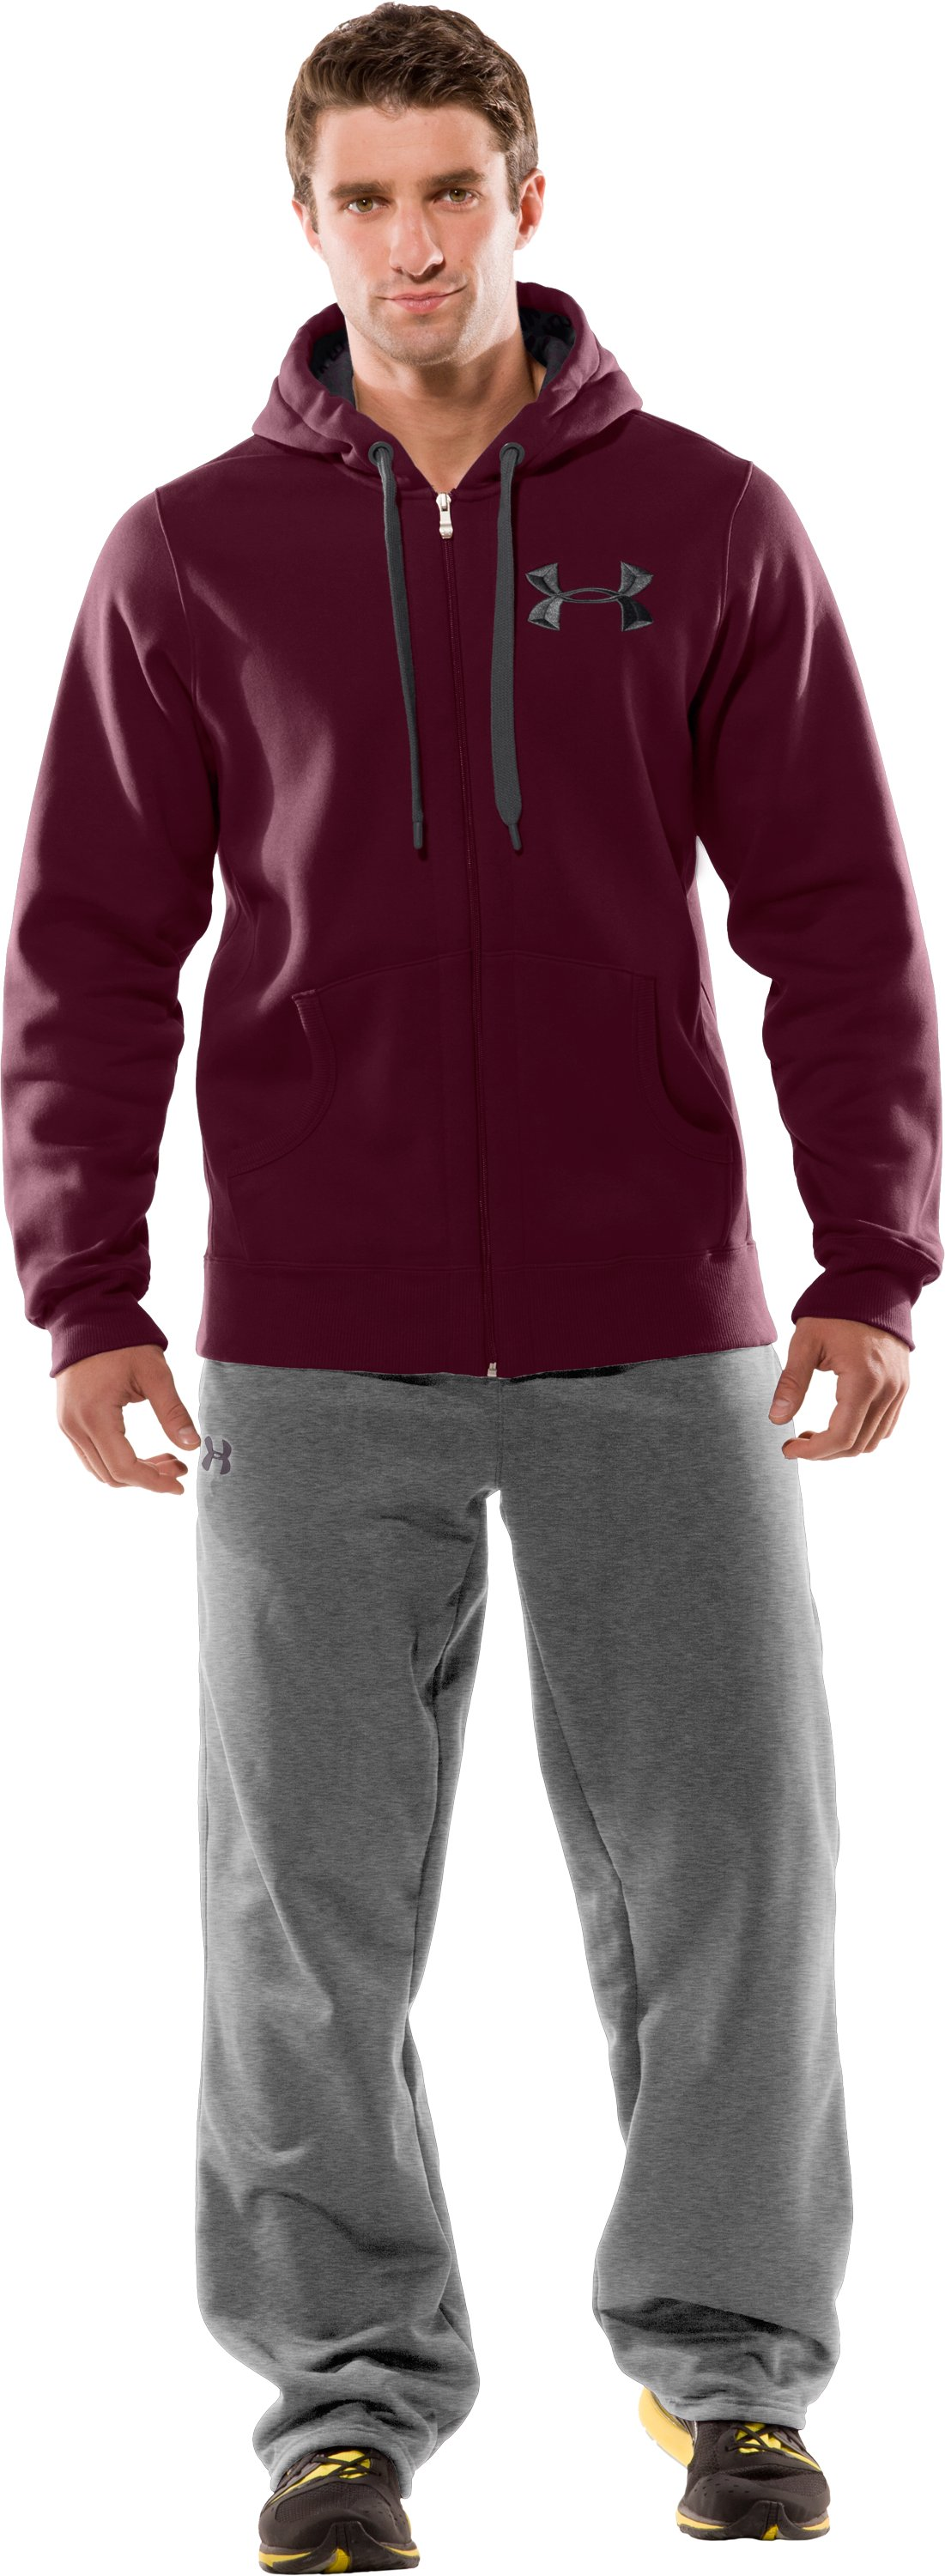 Men's UA Charged Cotton® Storm Full Zip Hoodie, Puncture, zoomed image